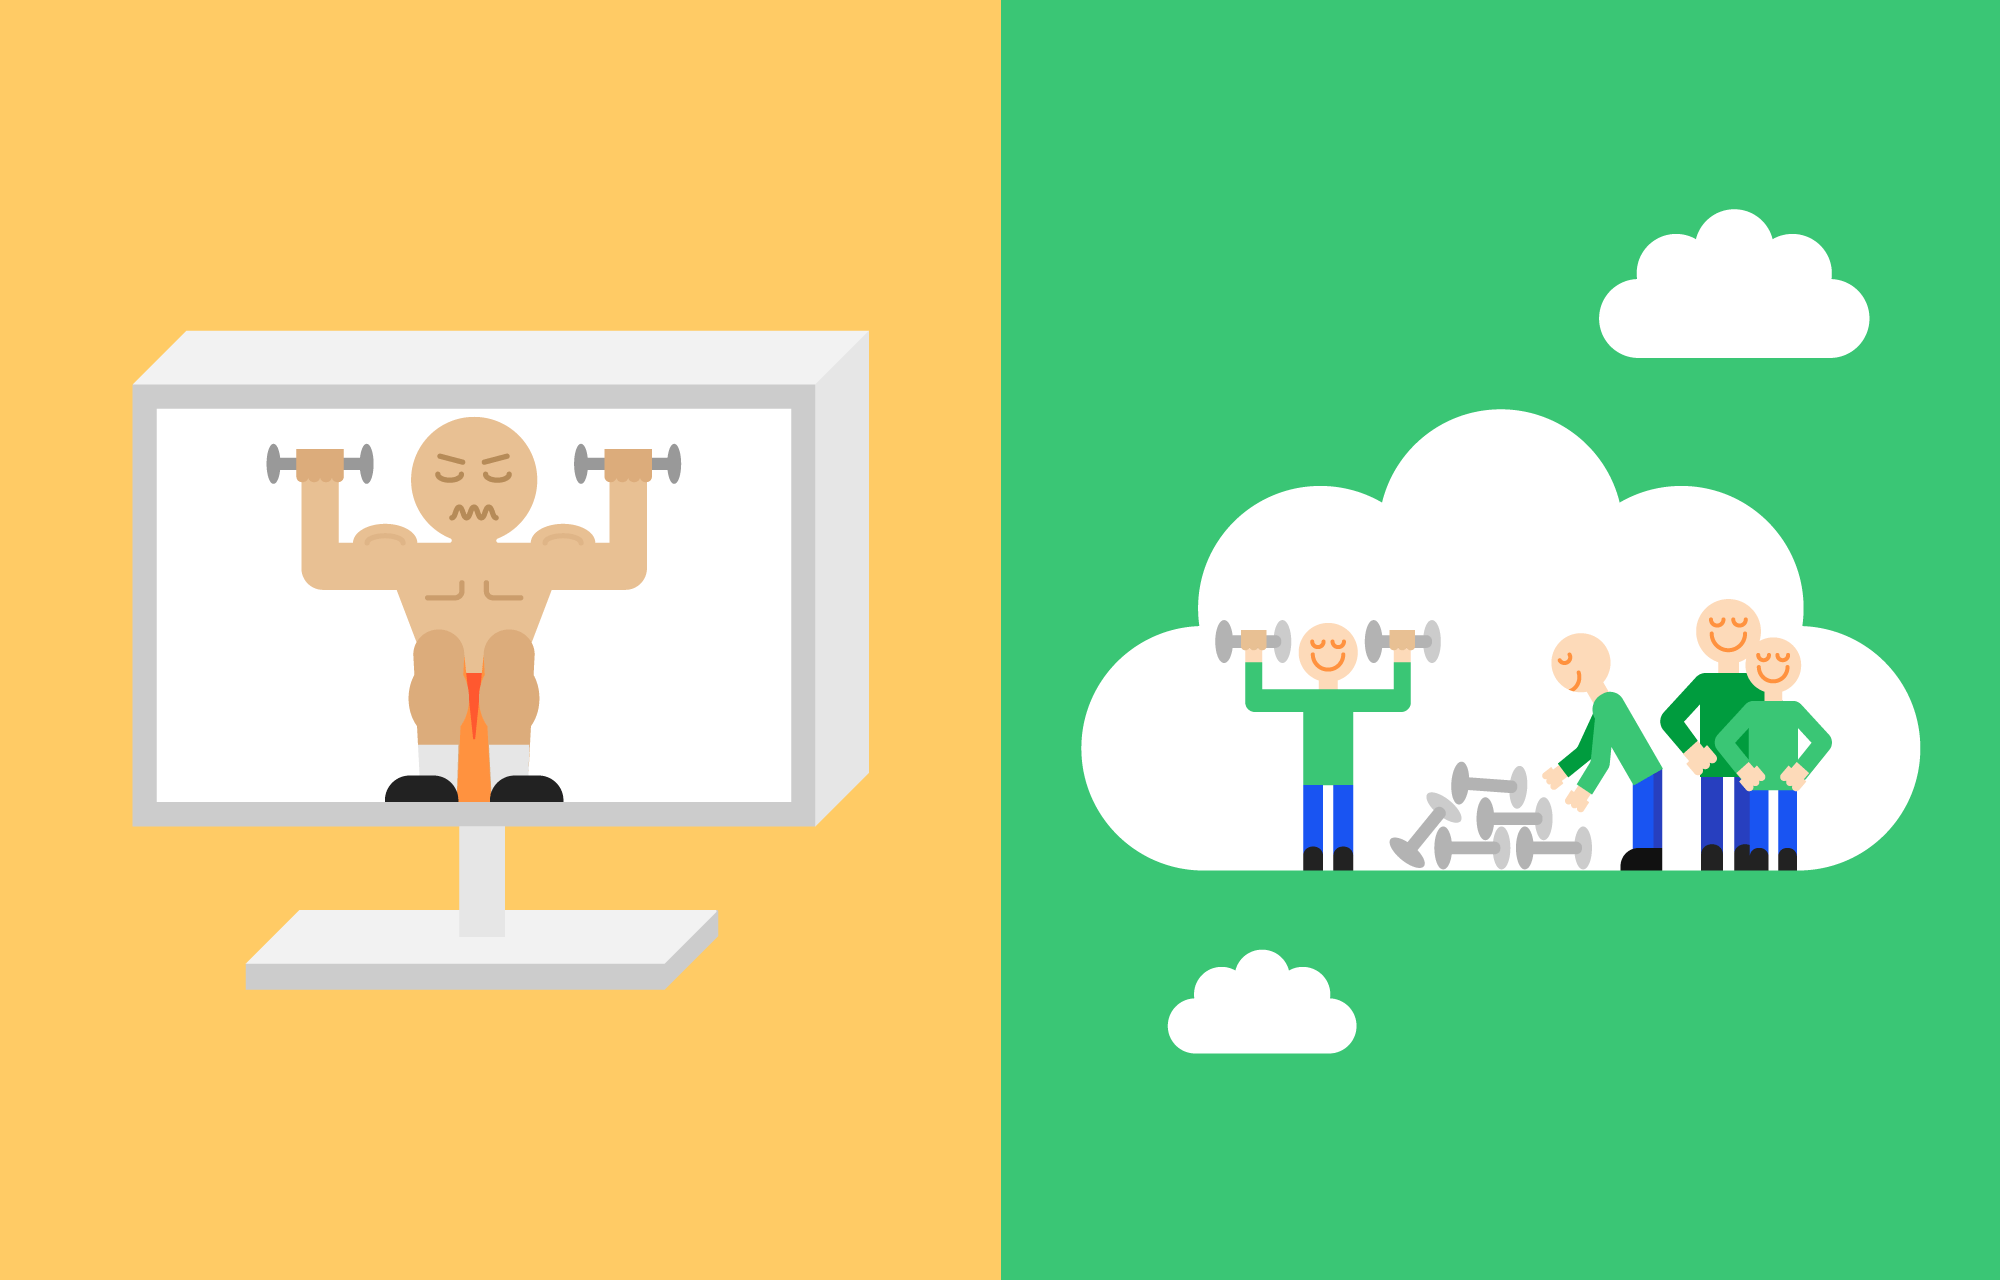 Muscular man lifting tiny weights inside computer, versus four regular guys lifting properly sized weights inside a cloud.